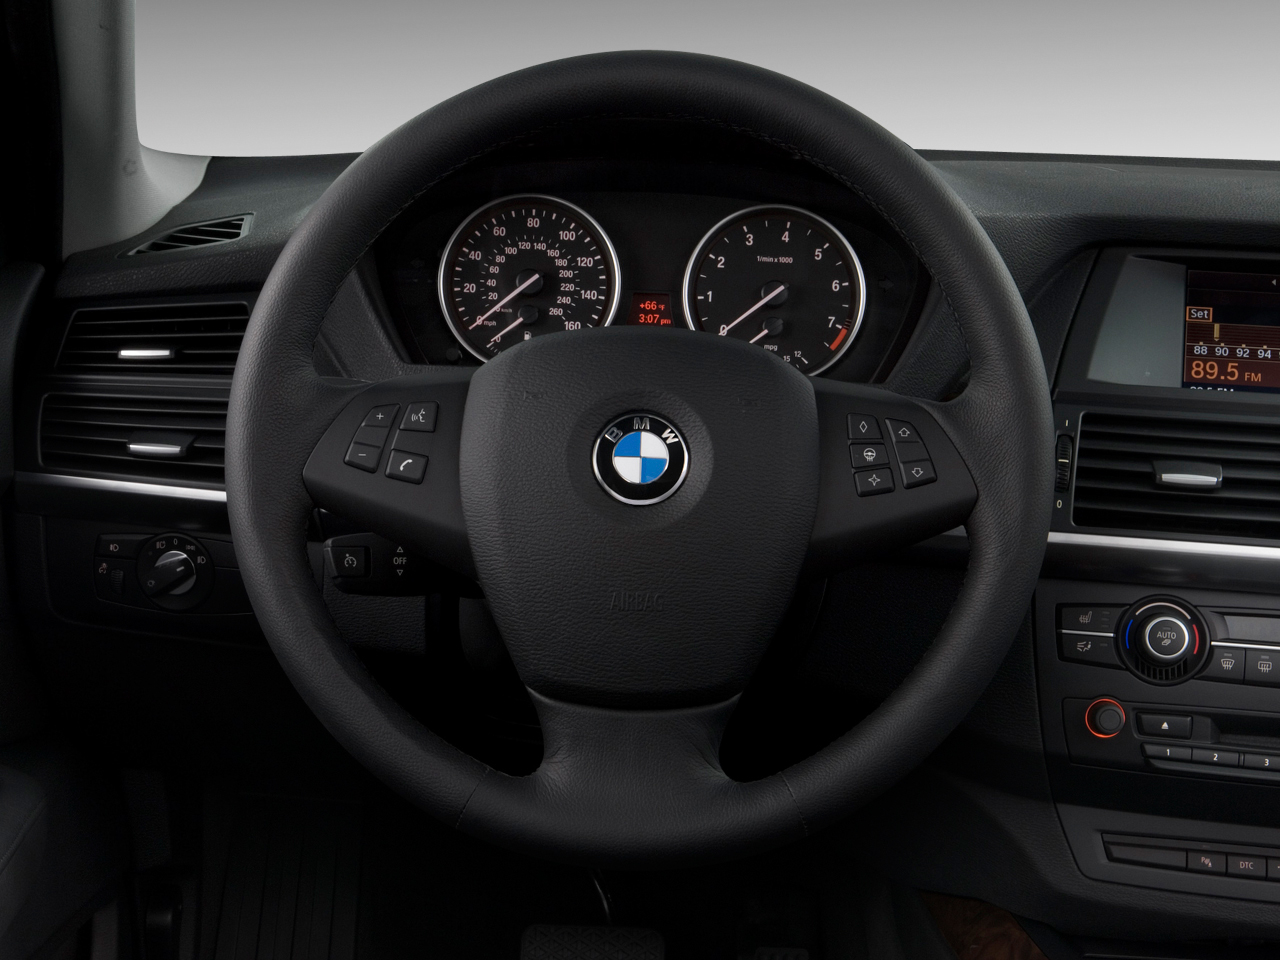 The New Bmw X5 Xdrive35d 10 Year Edition (50 Images) - HD Car Wallpaper